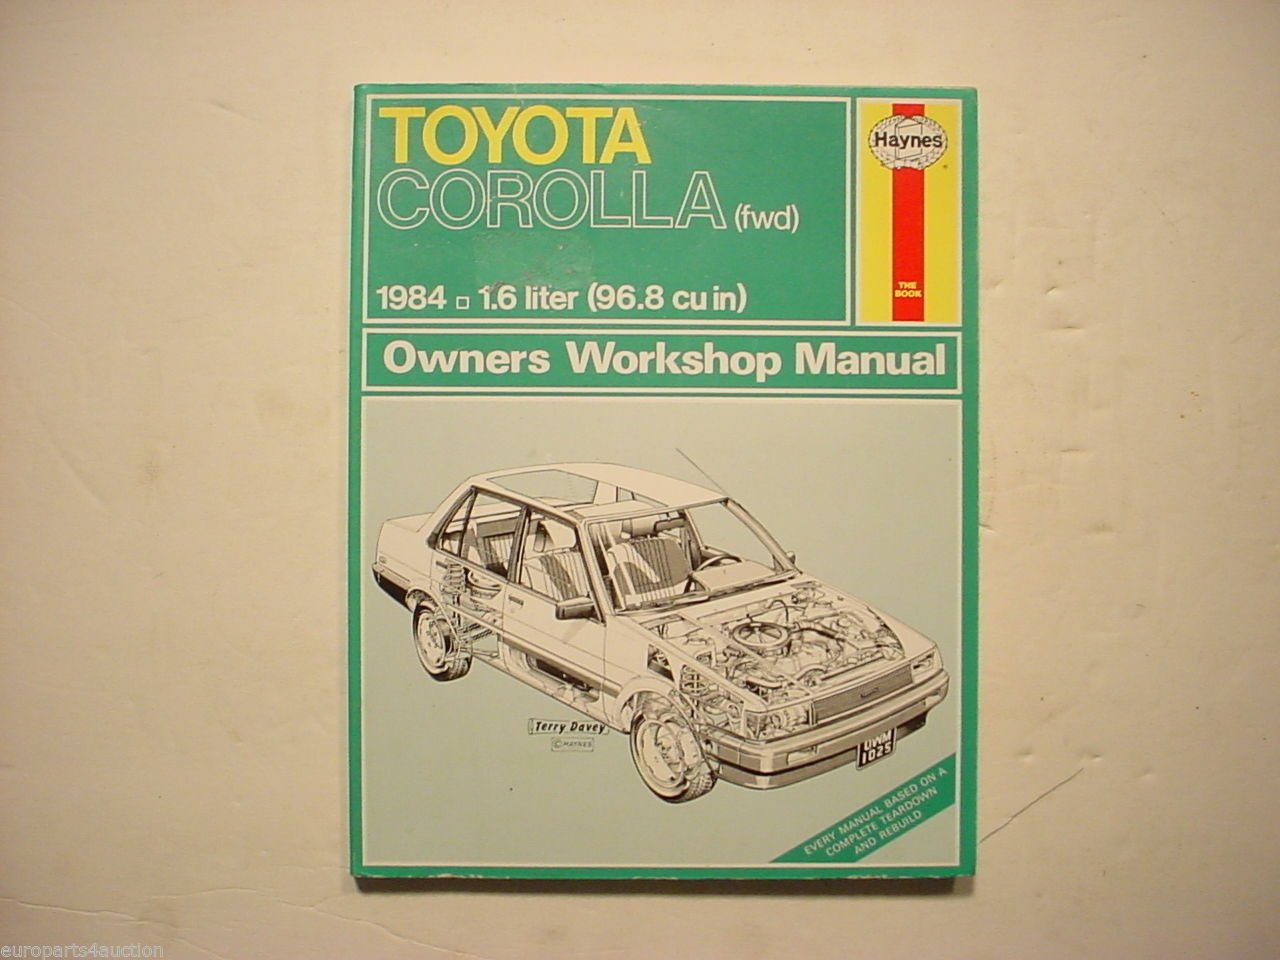 Amazon.com: Toyota Corolla Haynes Owners Workshop Manual 1025, 5M:  Automotive